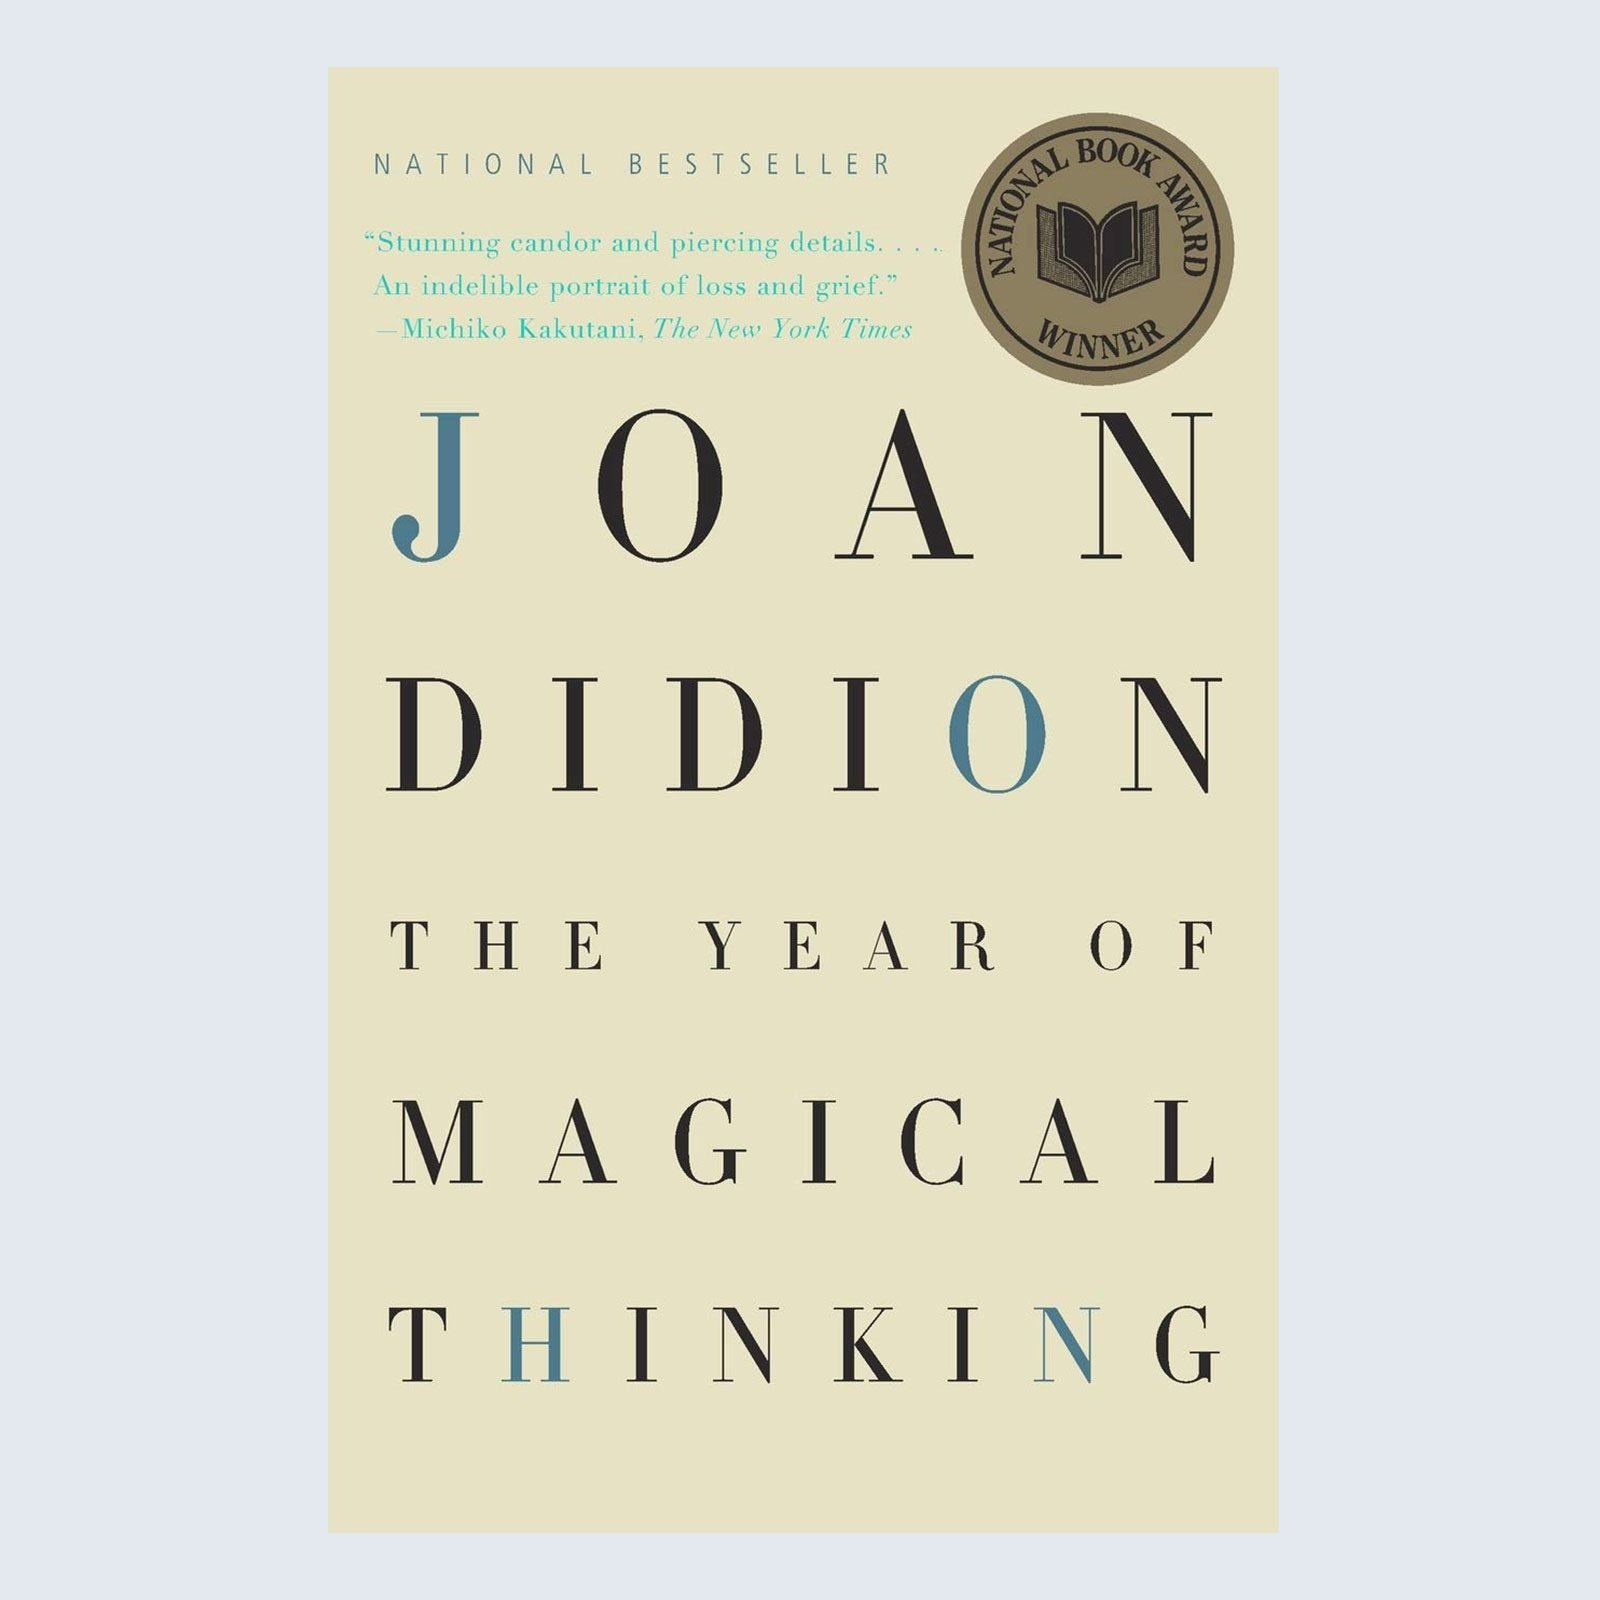 The Year of Magical Thinking byJoan Didion